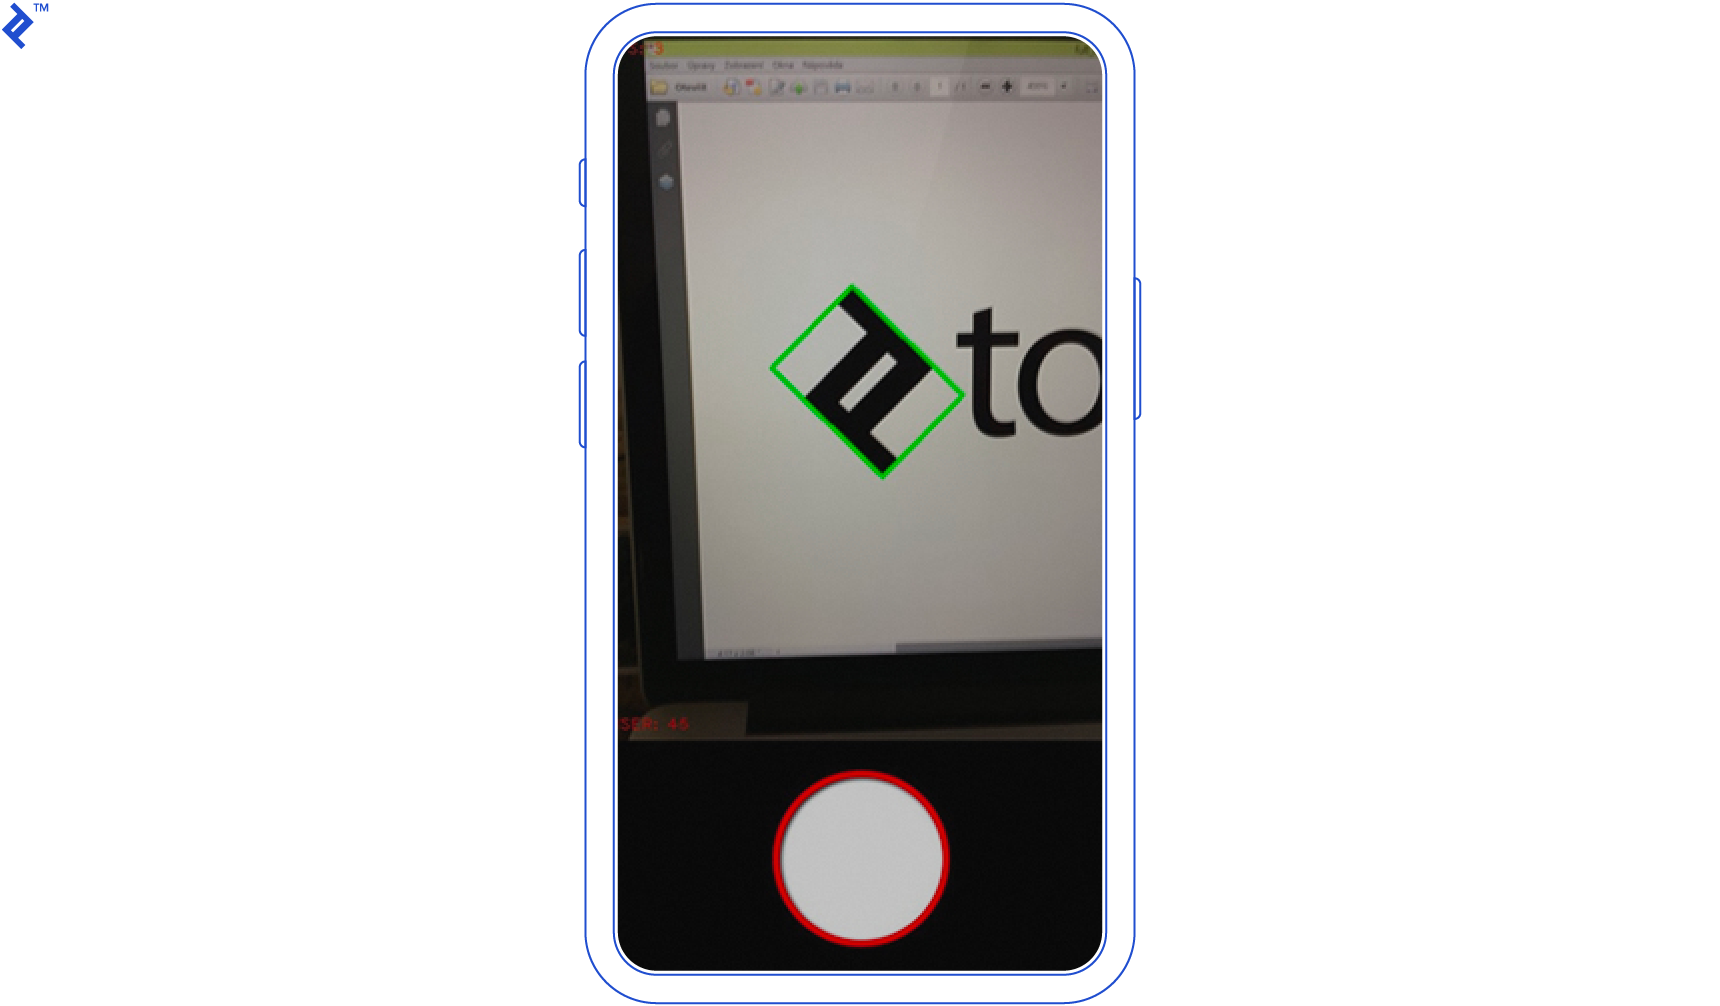 Detecting an image (the Toptal logo) vertically.